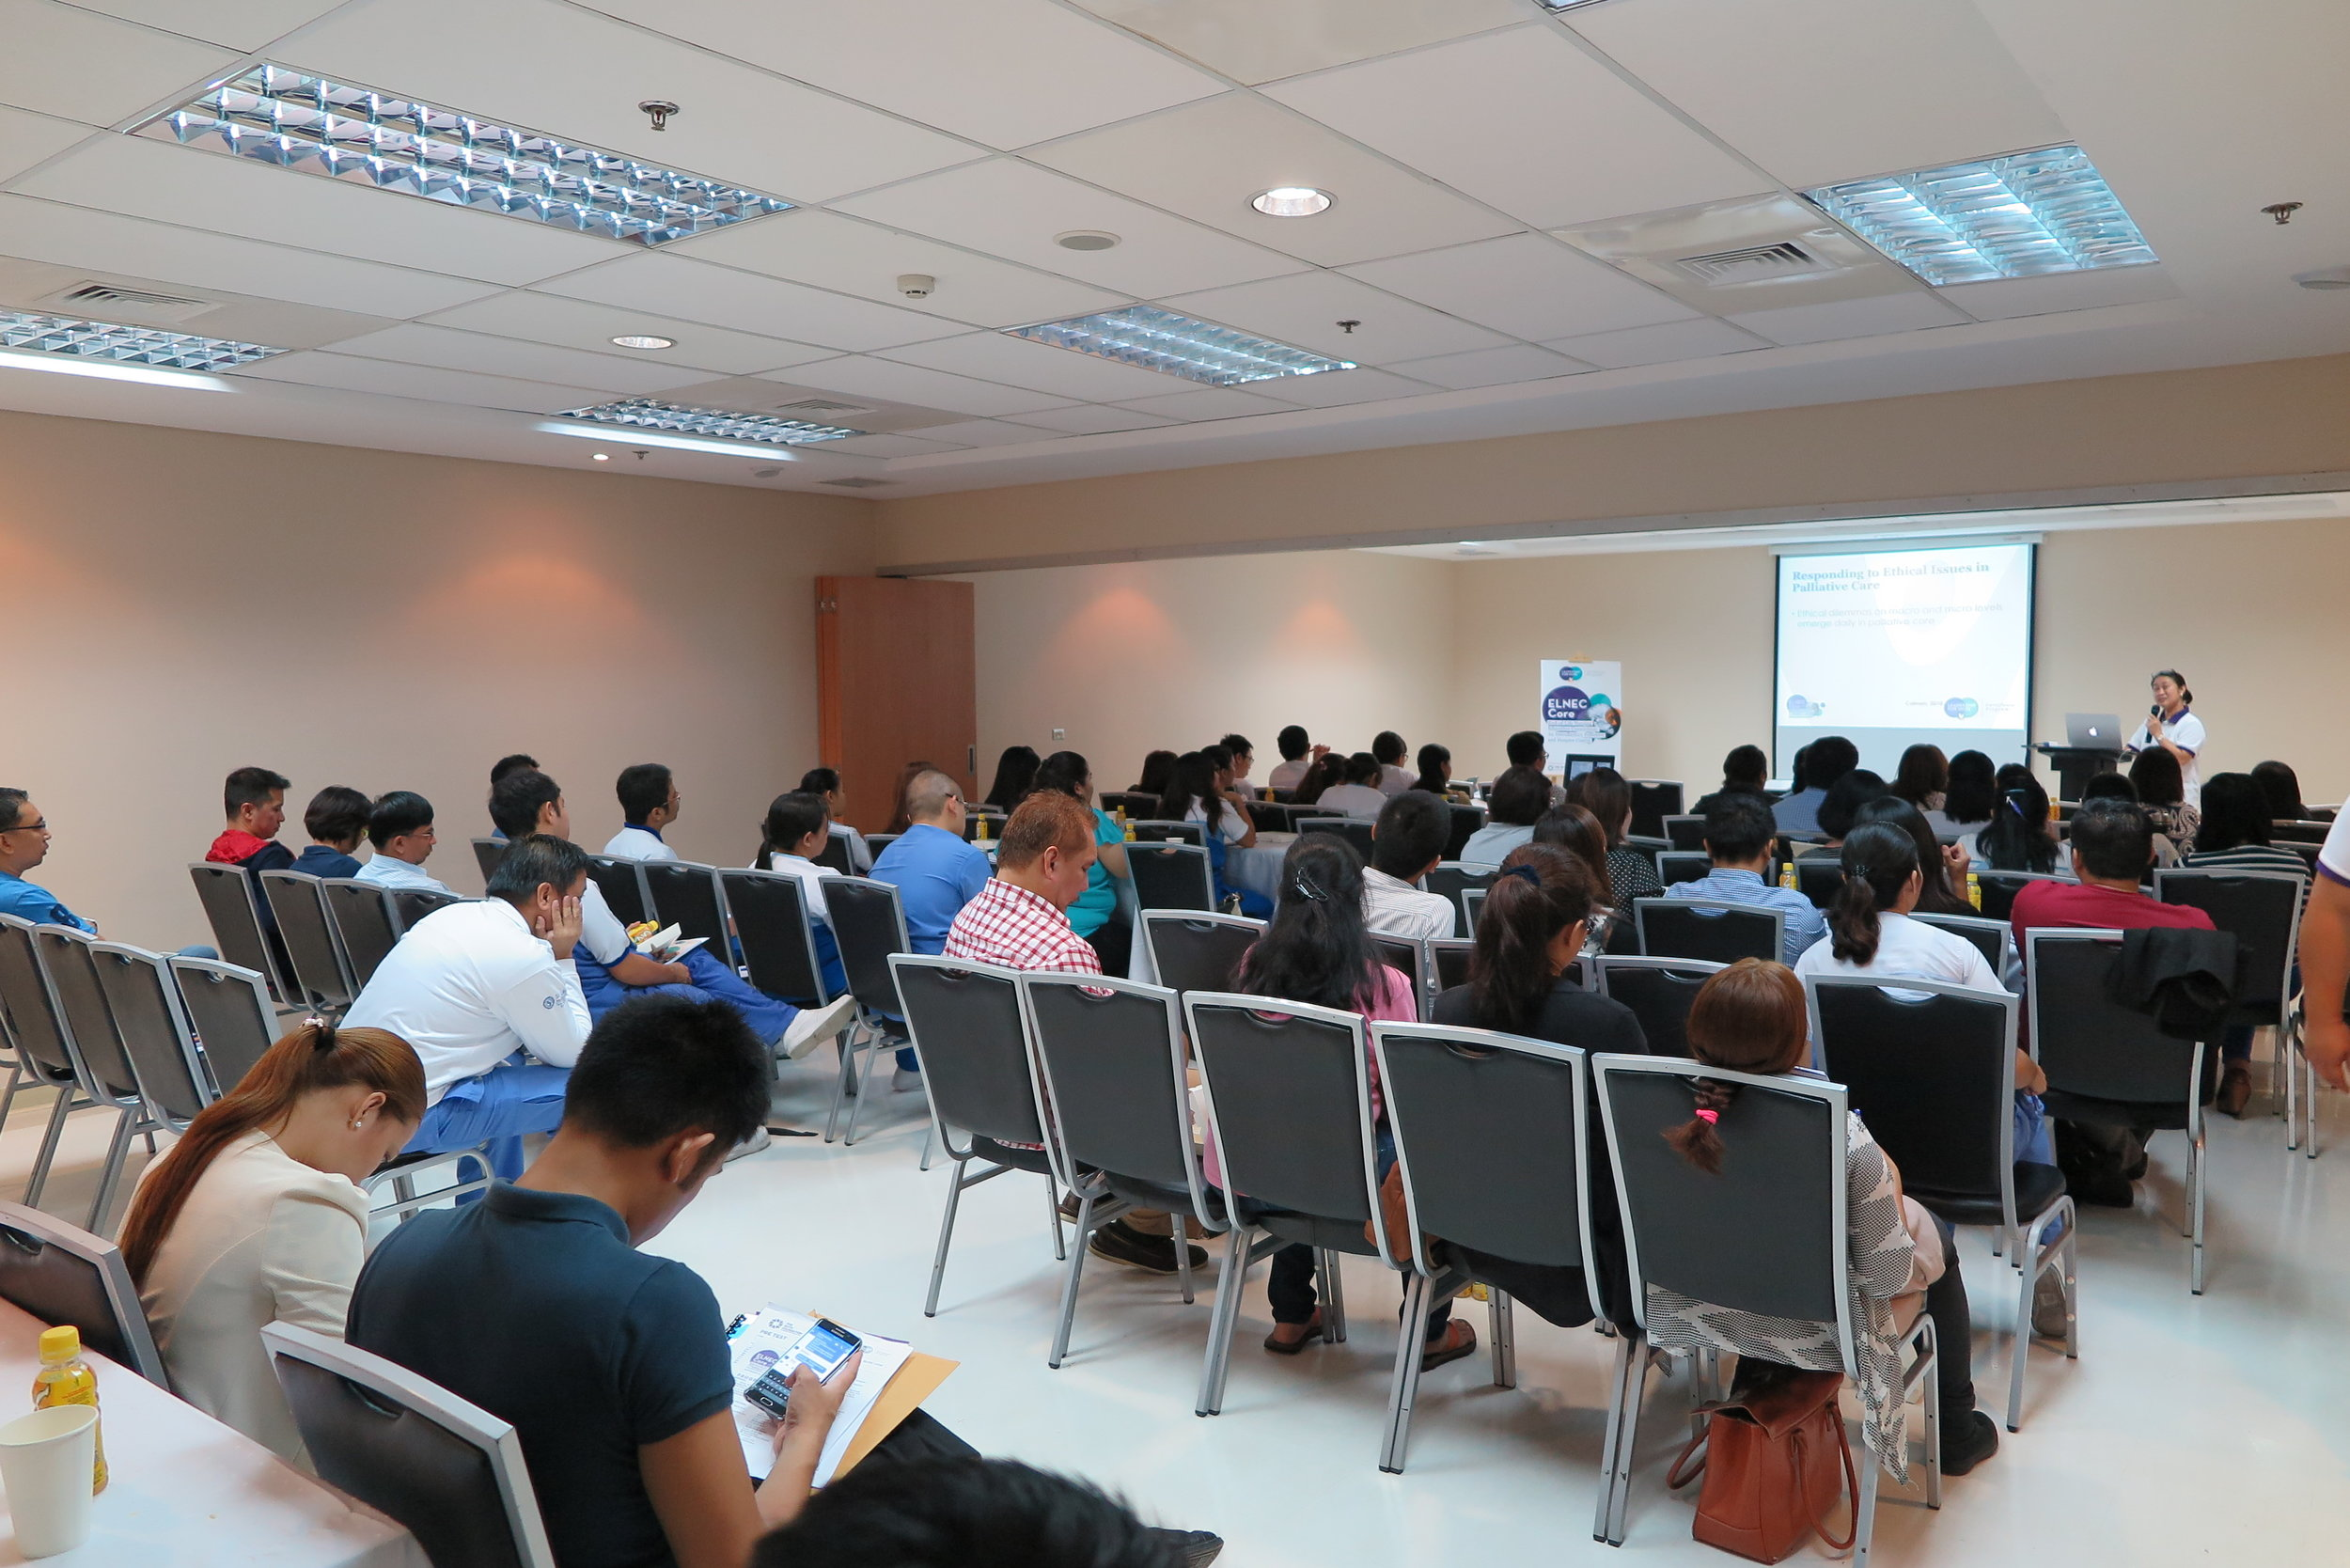 Over 50 participants filled the lecture room.